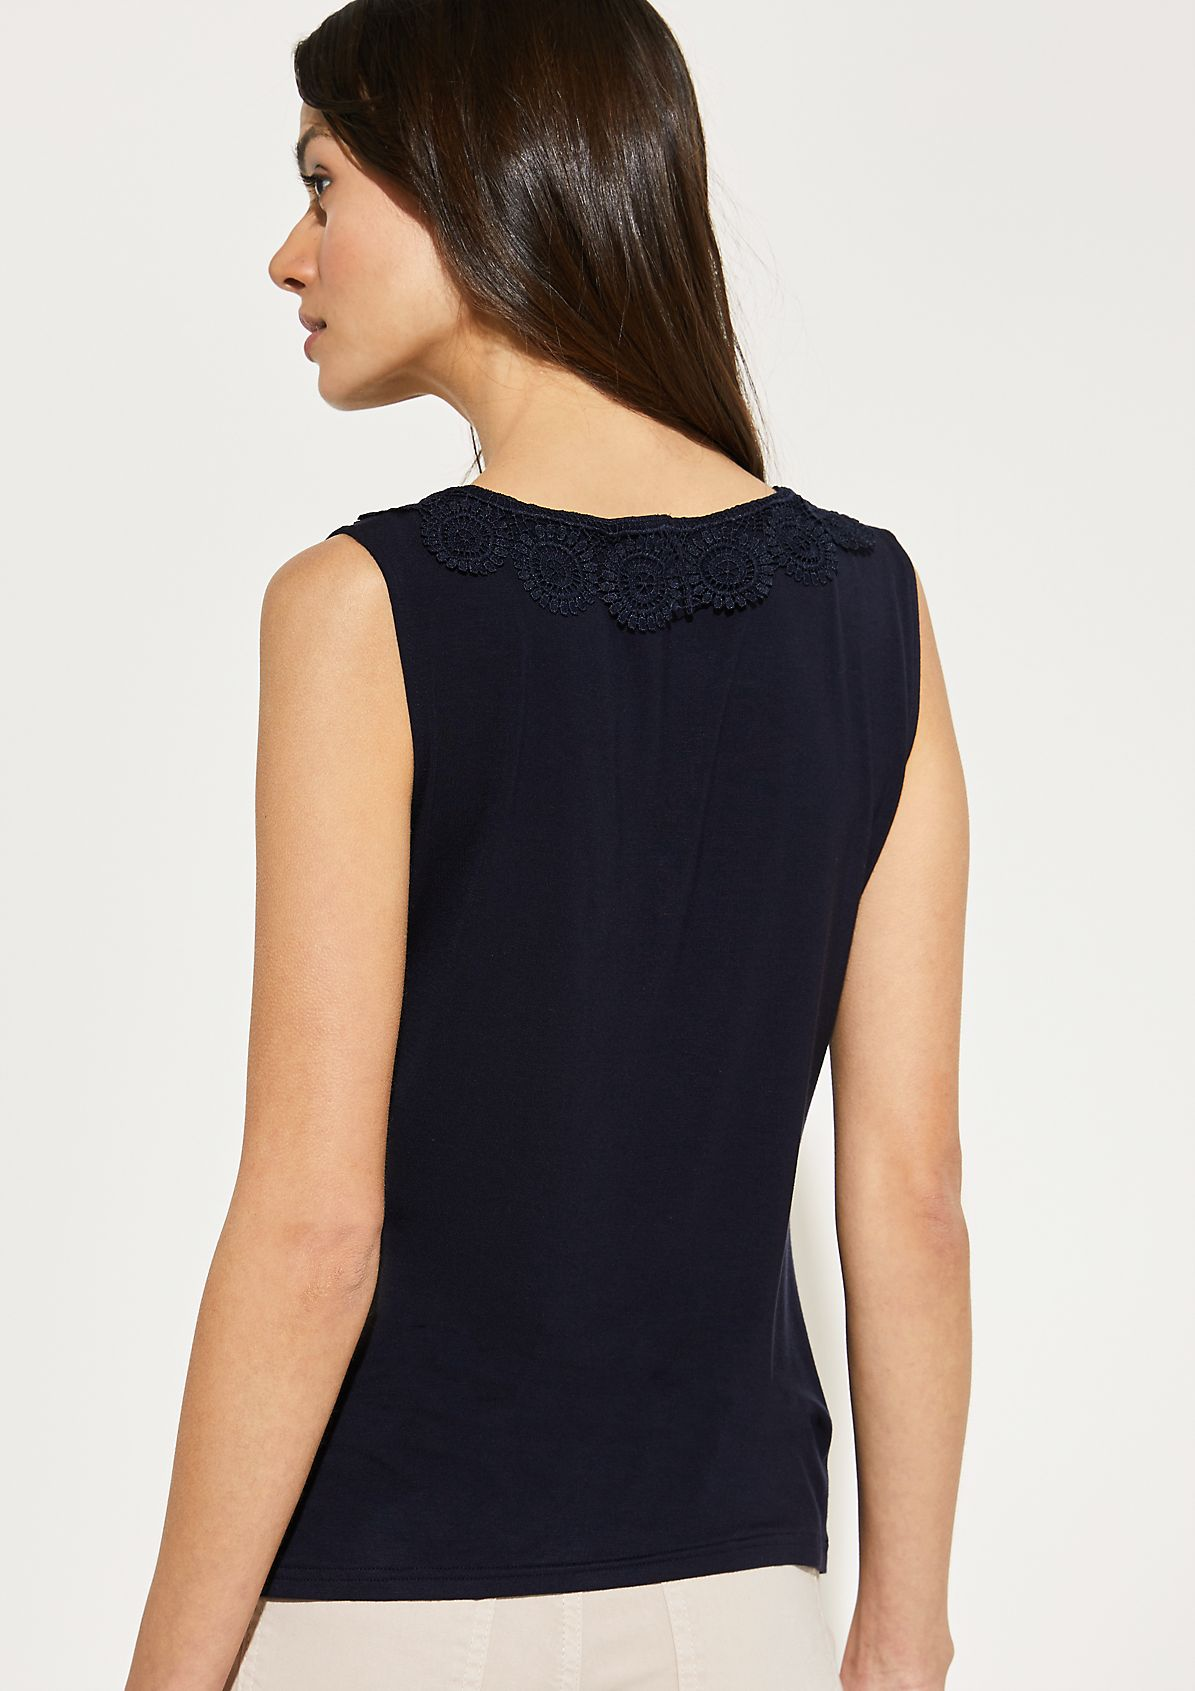 Top with delicate lace embellishments from comma